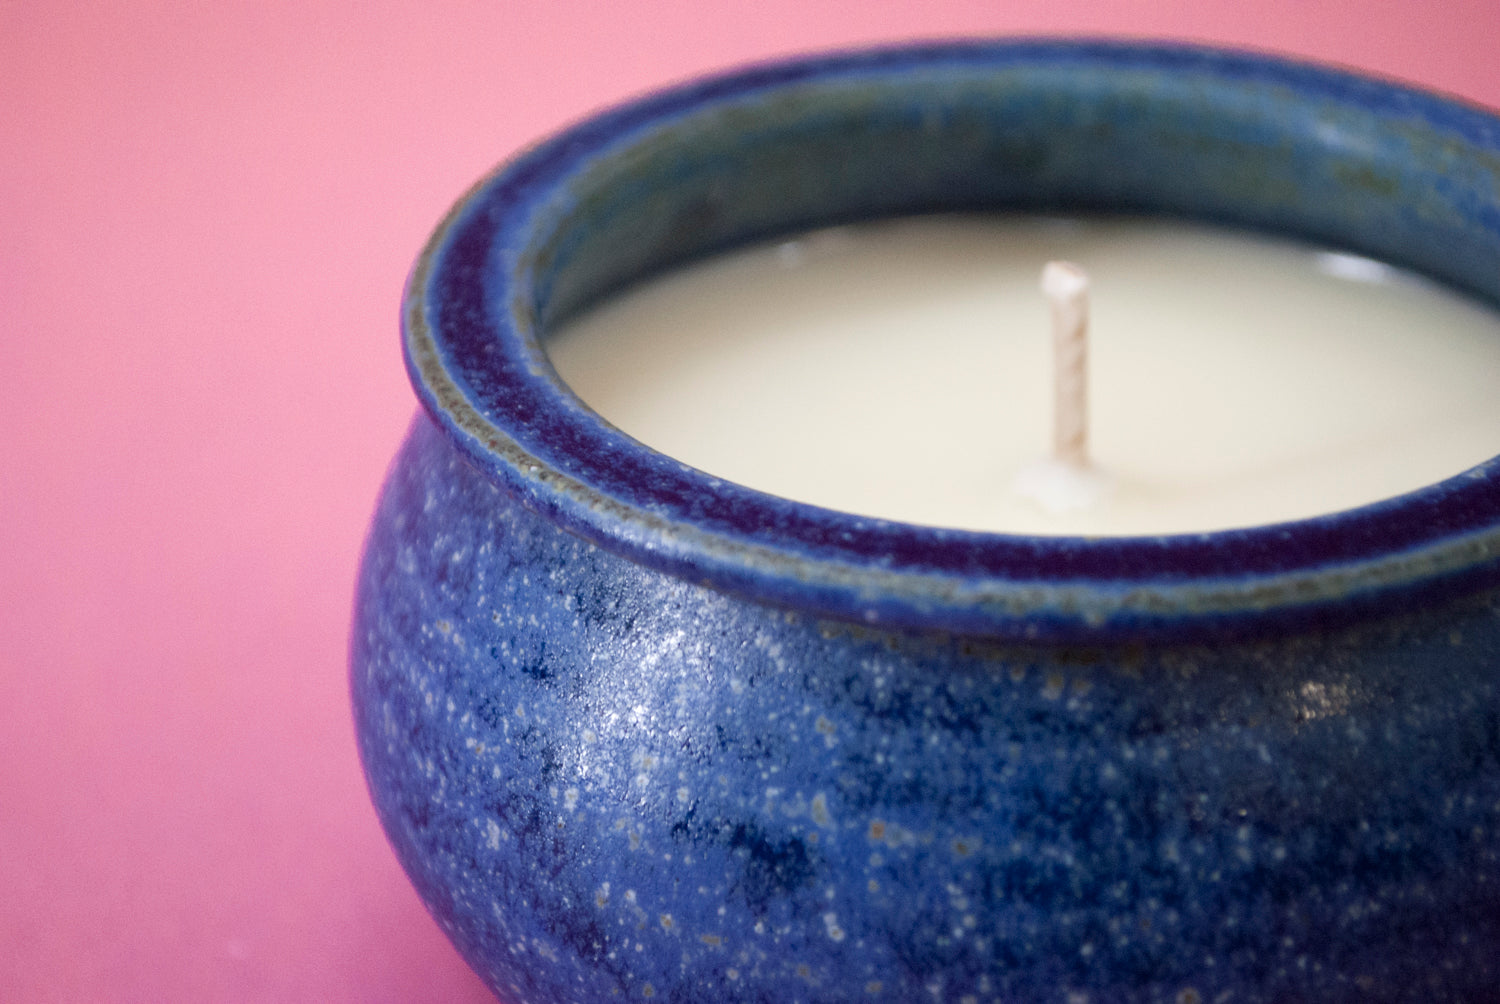 Rose Geranium Hand-Poured Soy Candle